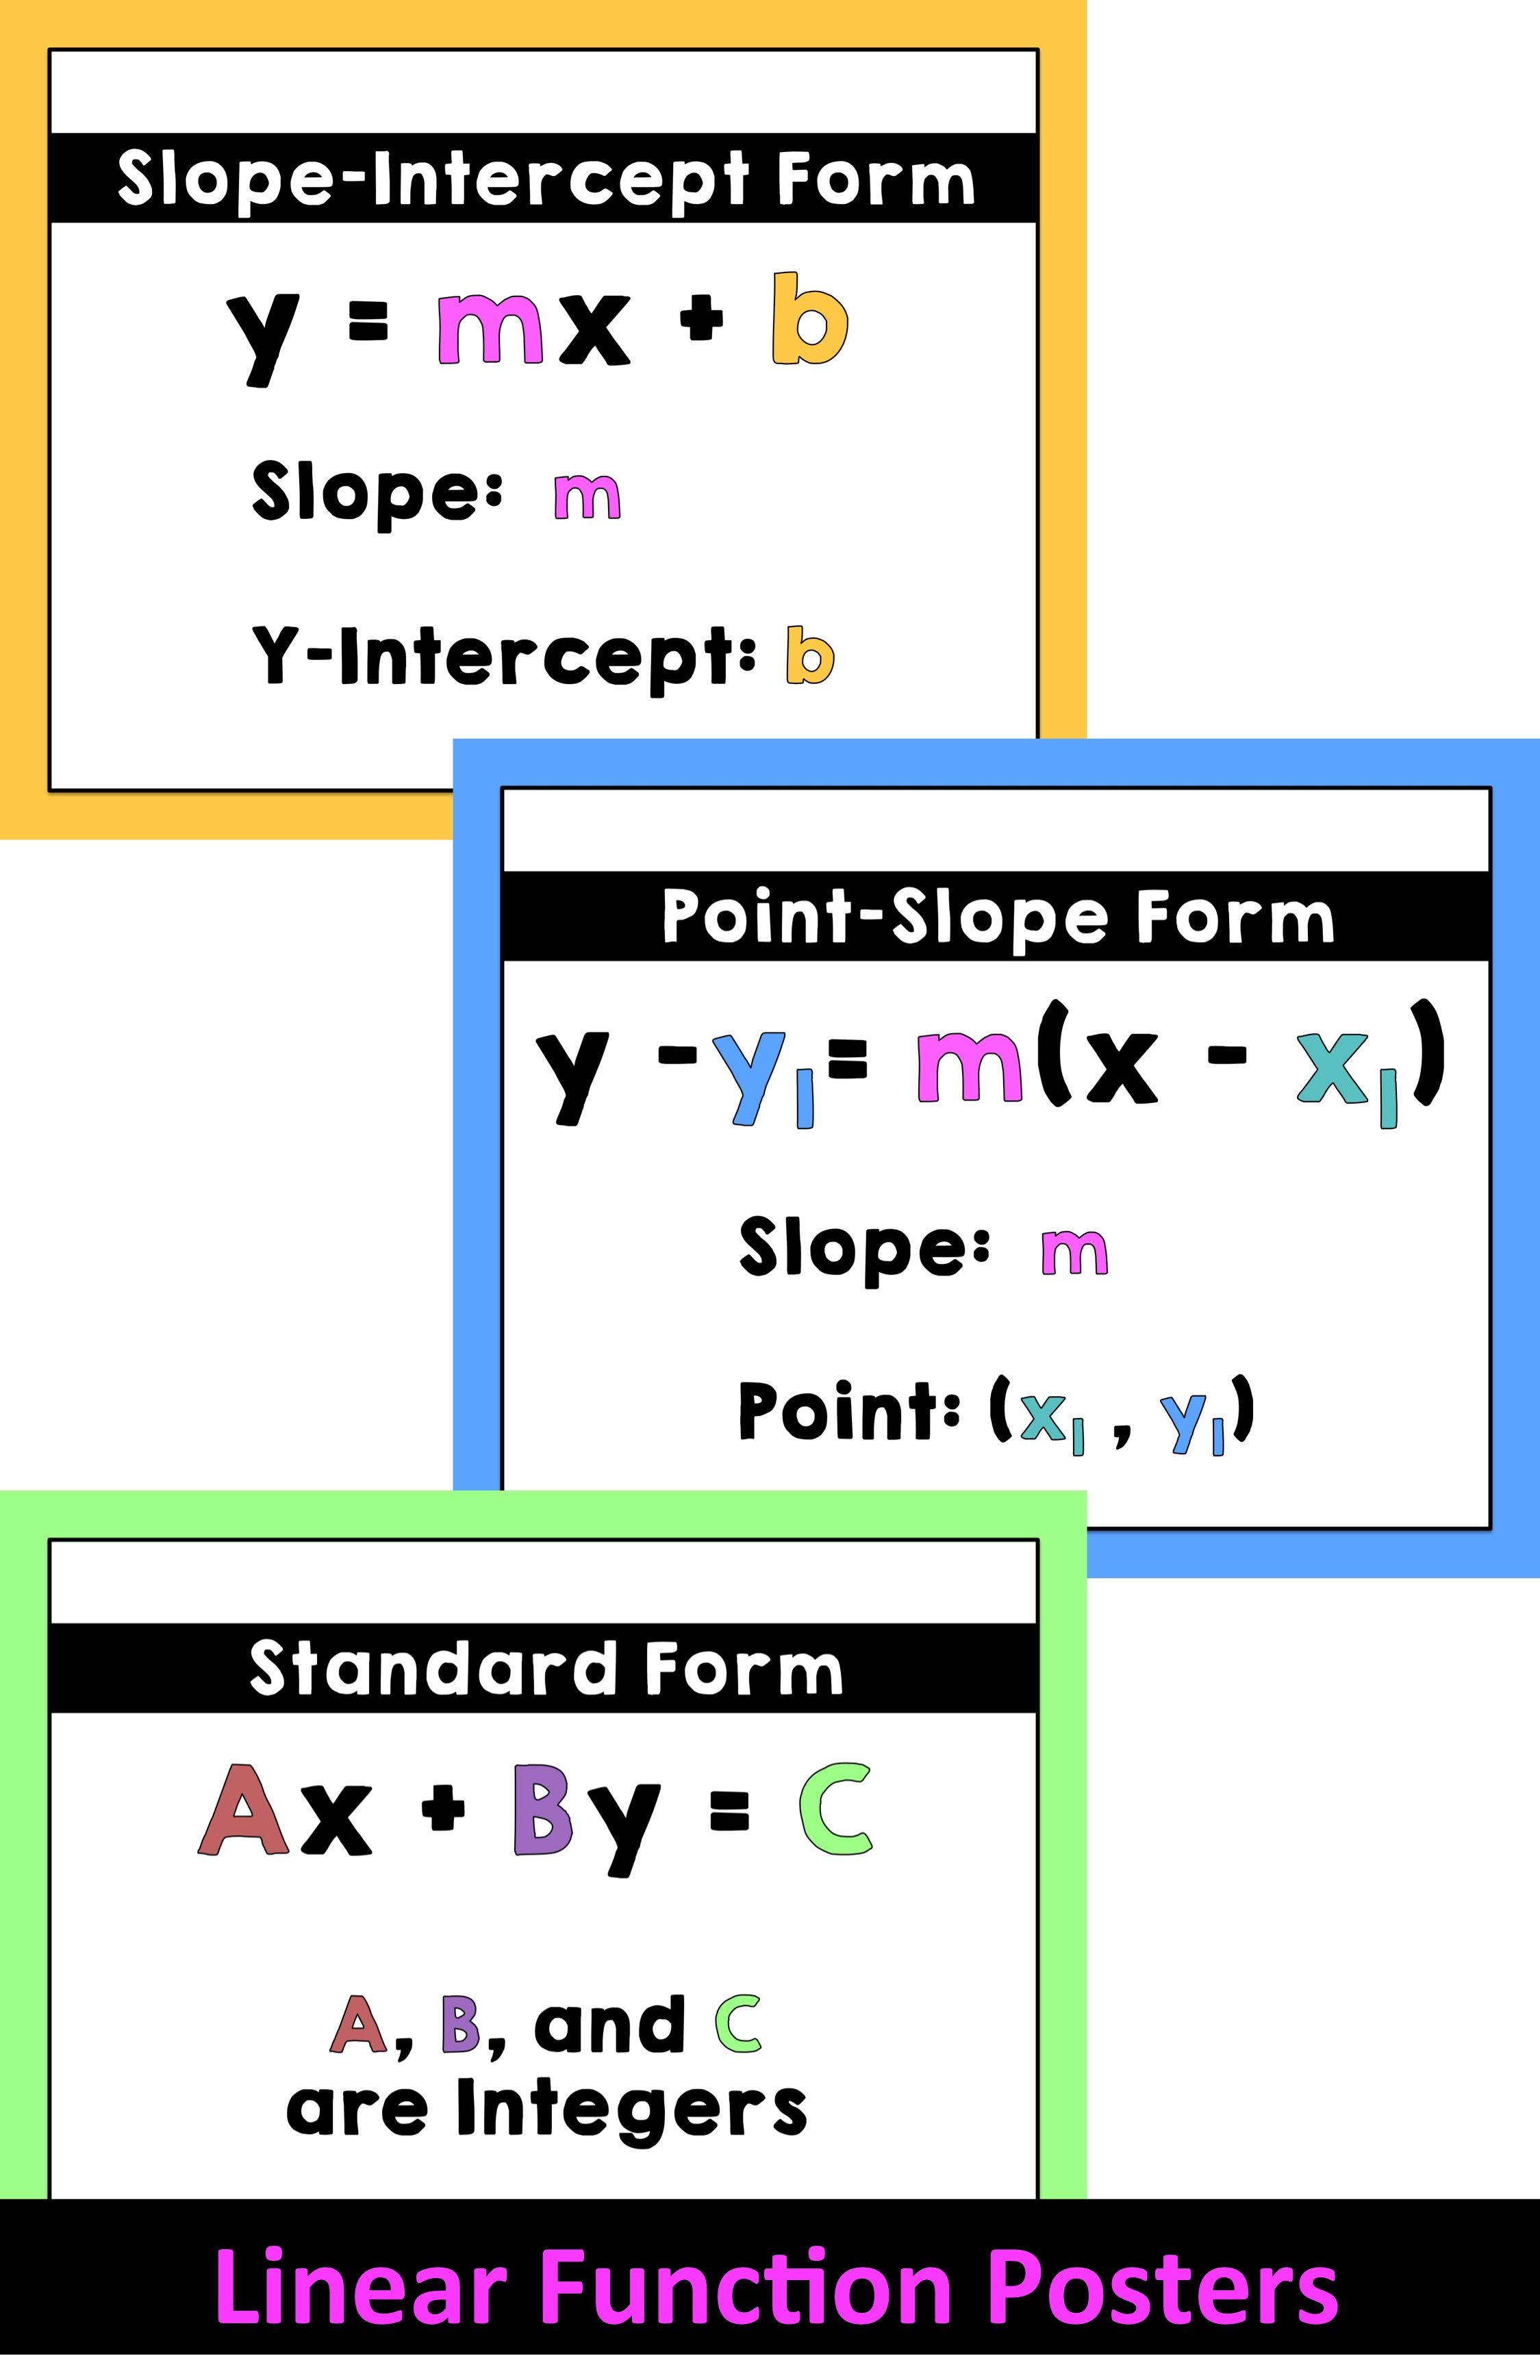 point slope form slope intercept form standard form  Linear Functions: Posters and Reference Sheet | Linear ...